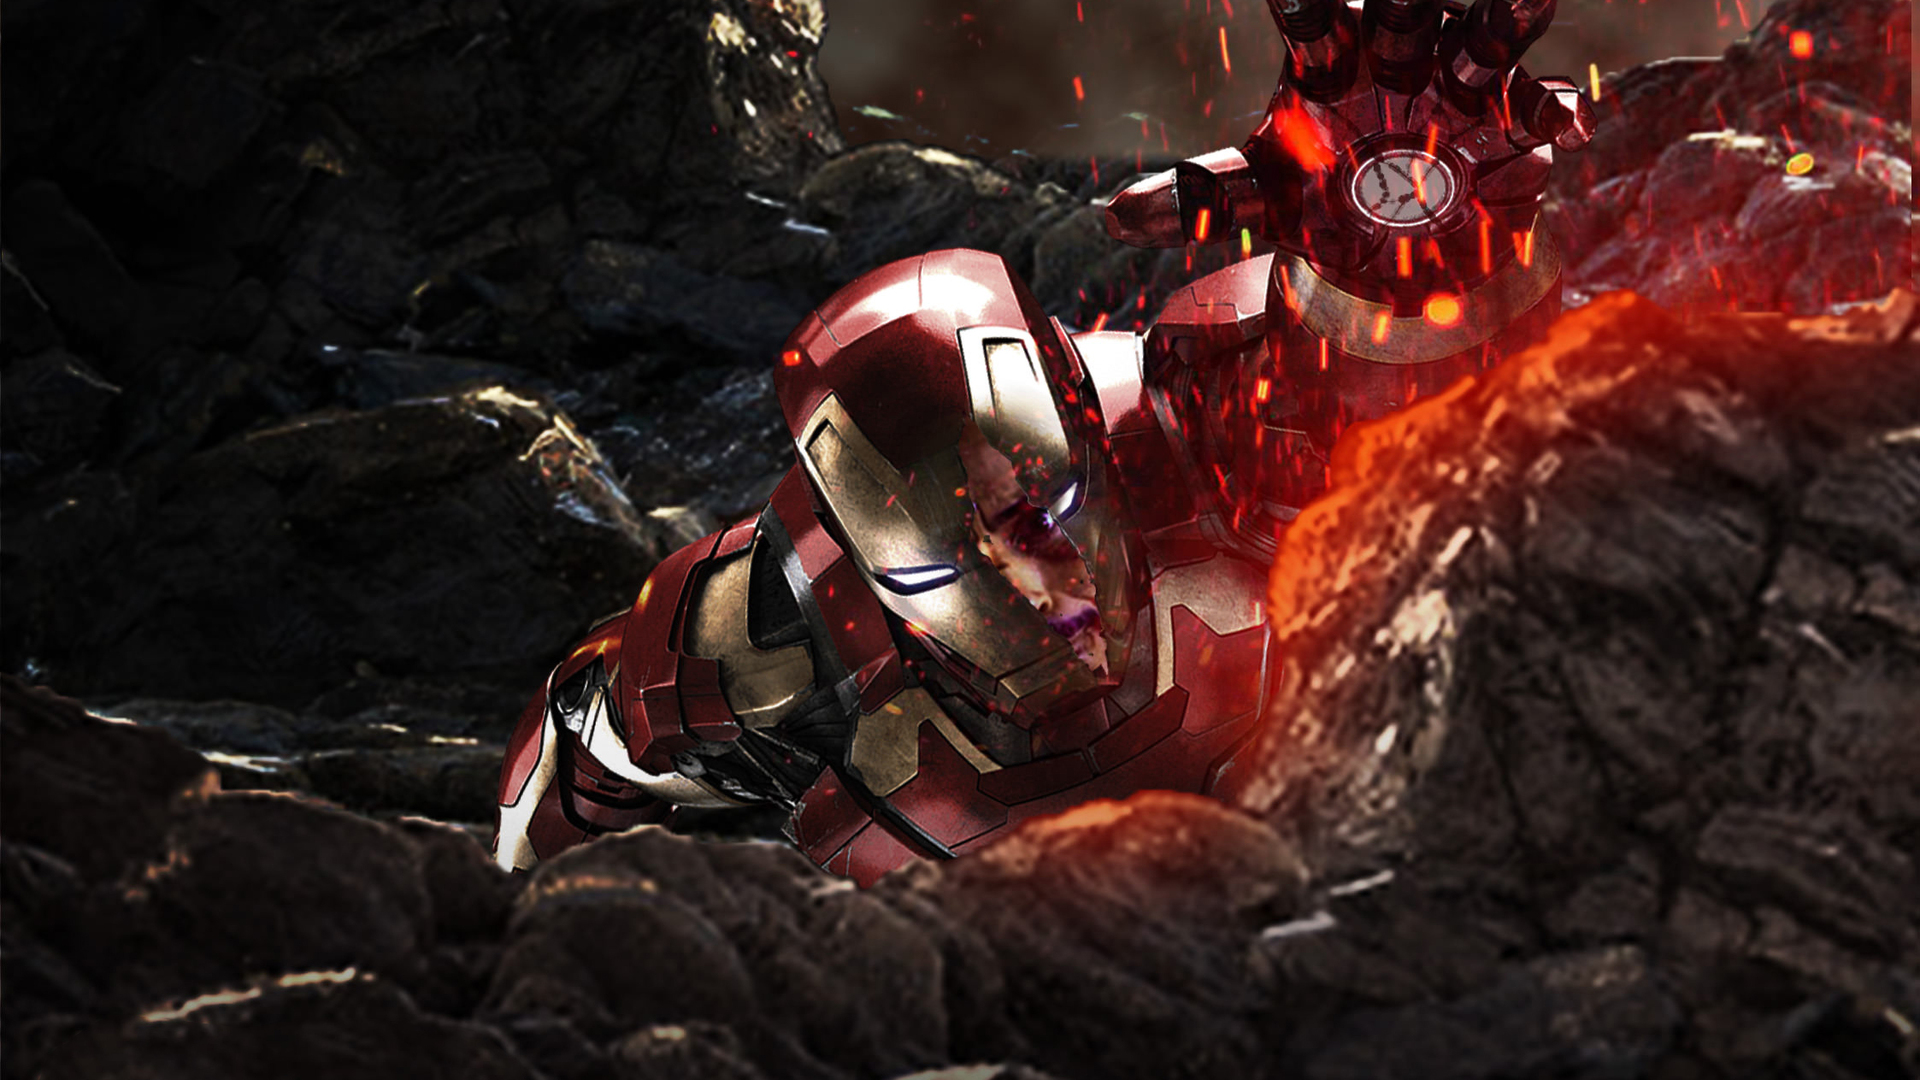 1920x1080 iron man in avengers infinity war laptop full hd 1080p hd